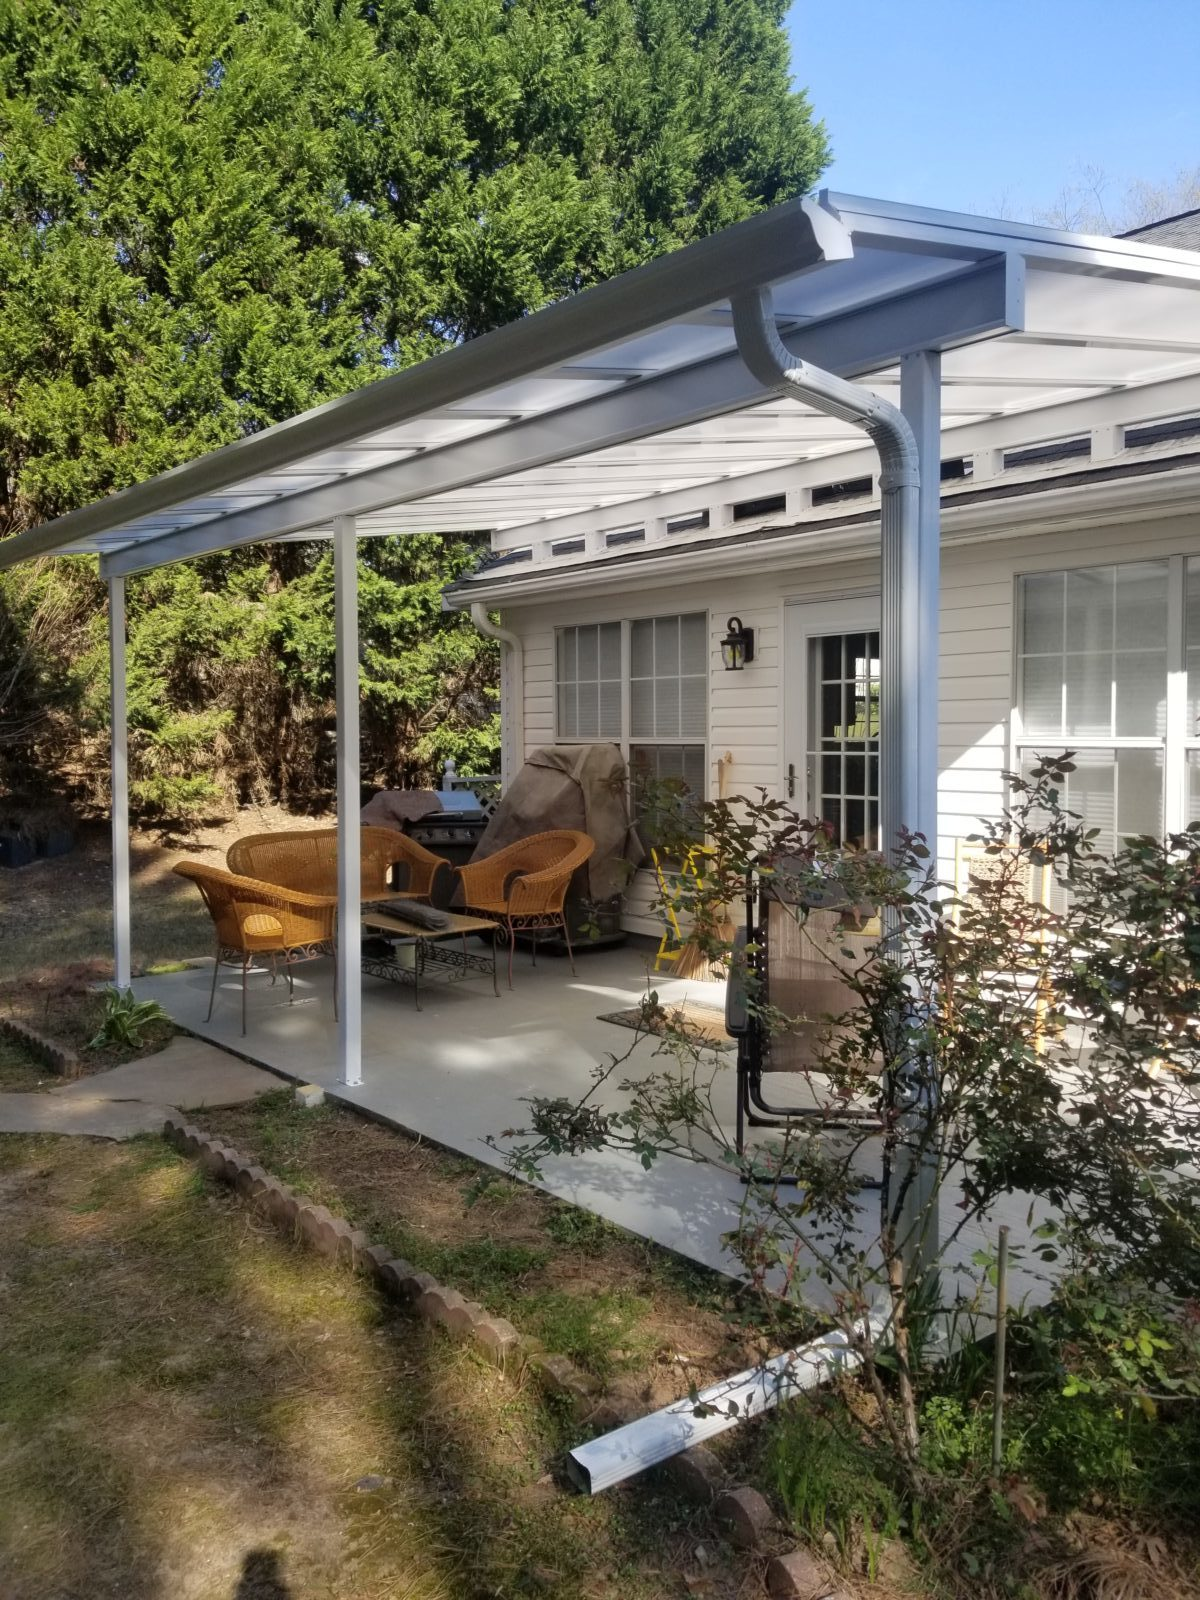 Bright Covers Products   Patio Covers, Commercial Roof ...